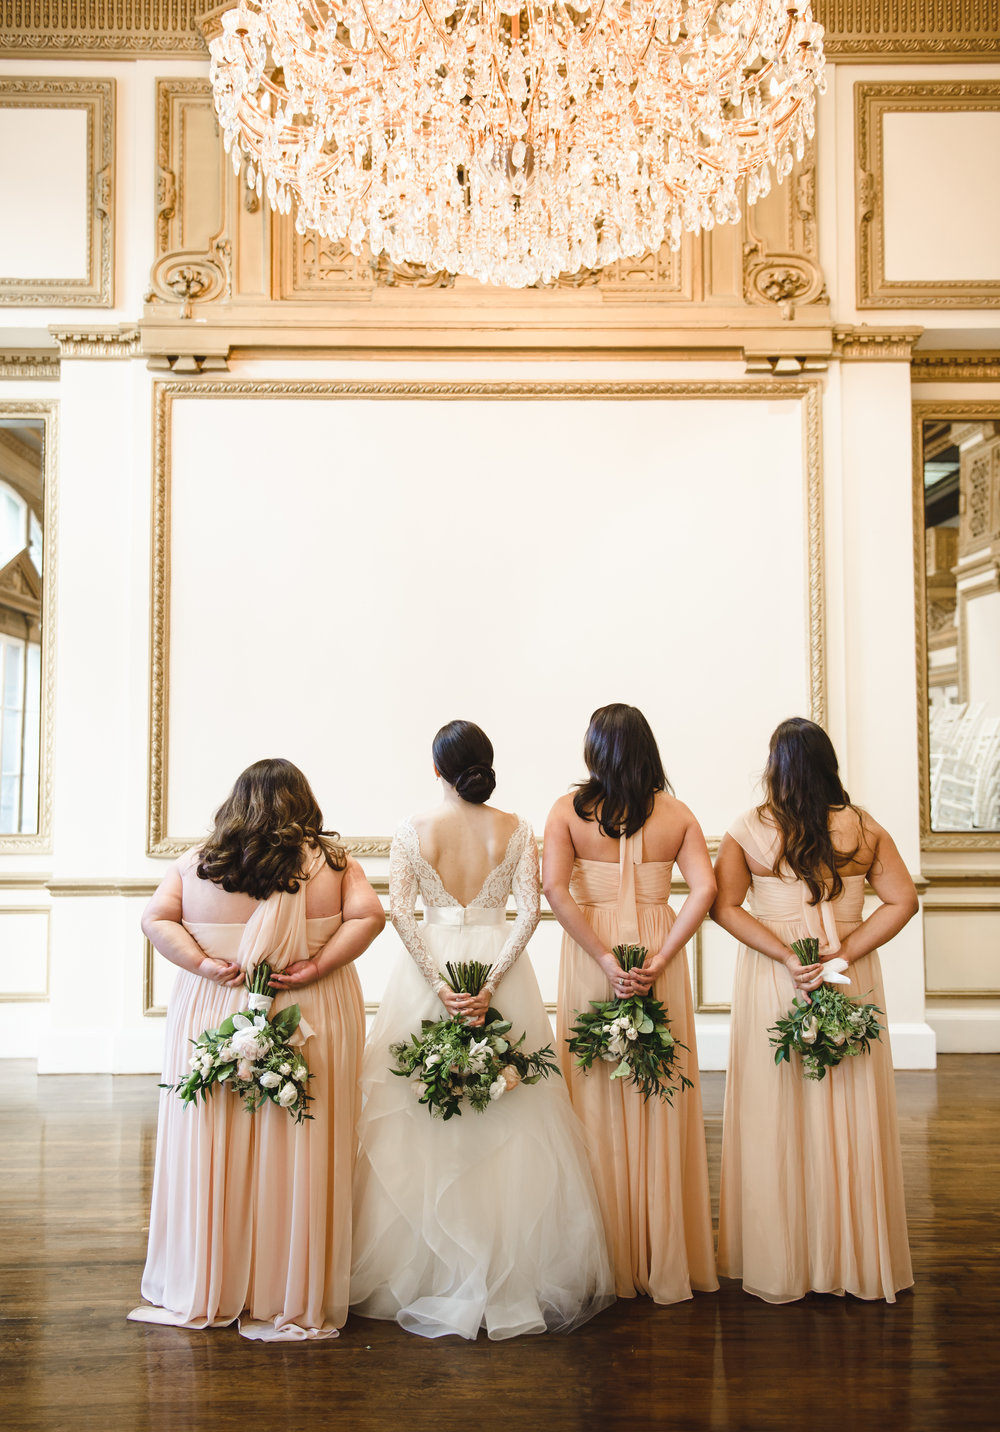 bridesmaids photo ideas with bouquets #Lrqcfloral #dtlawedding .jpg